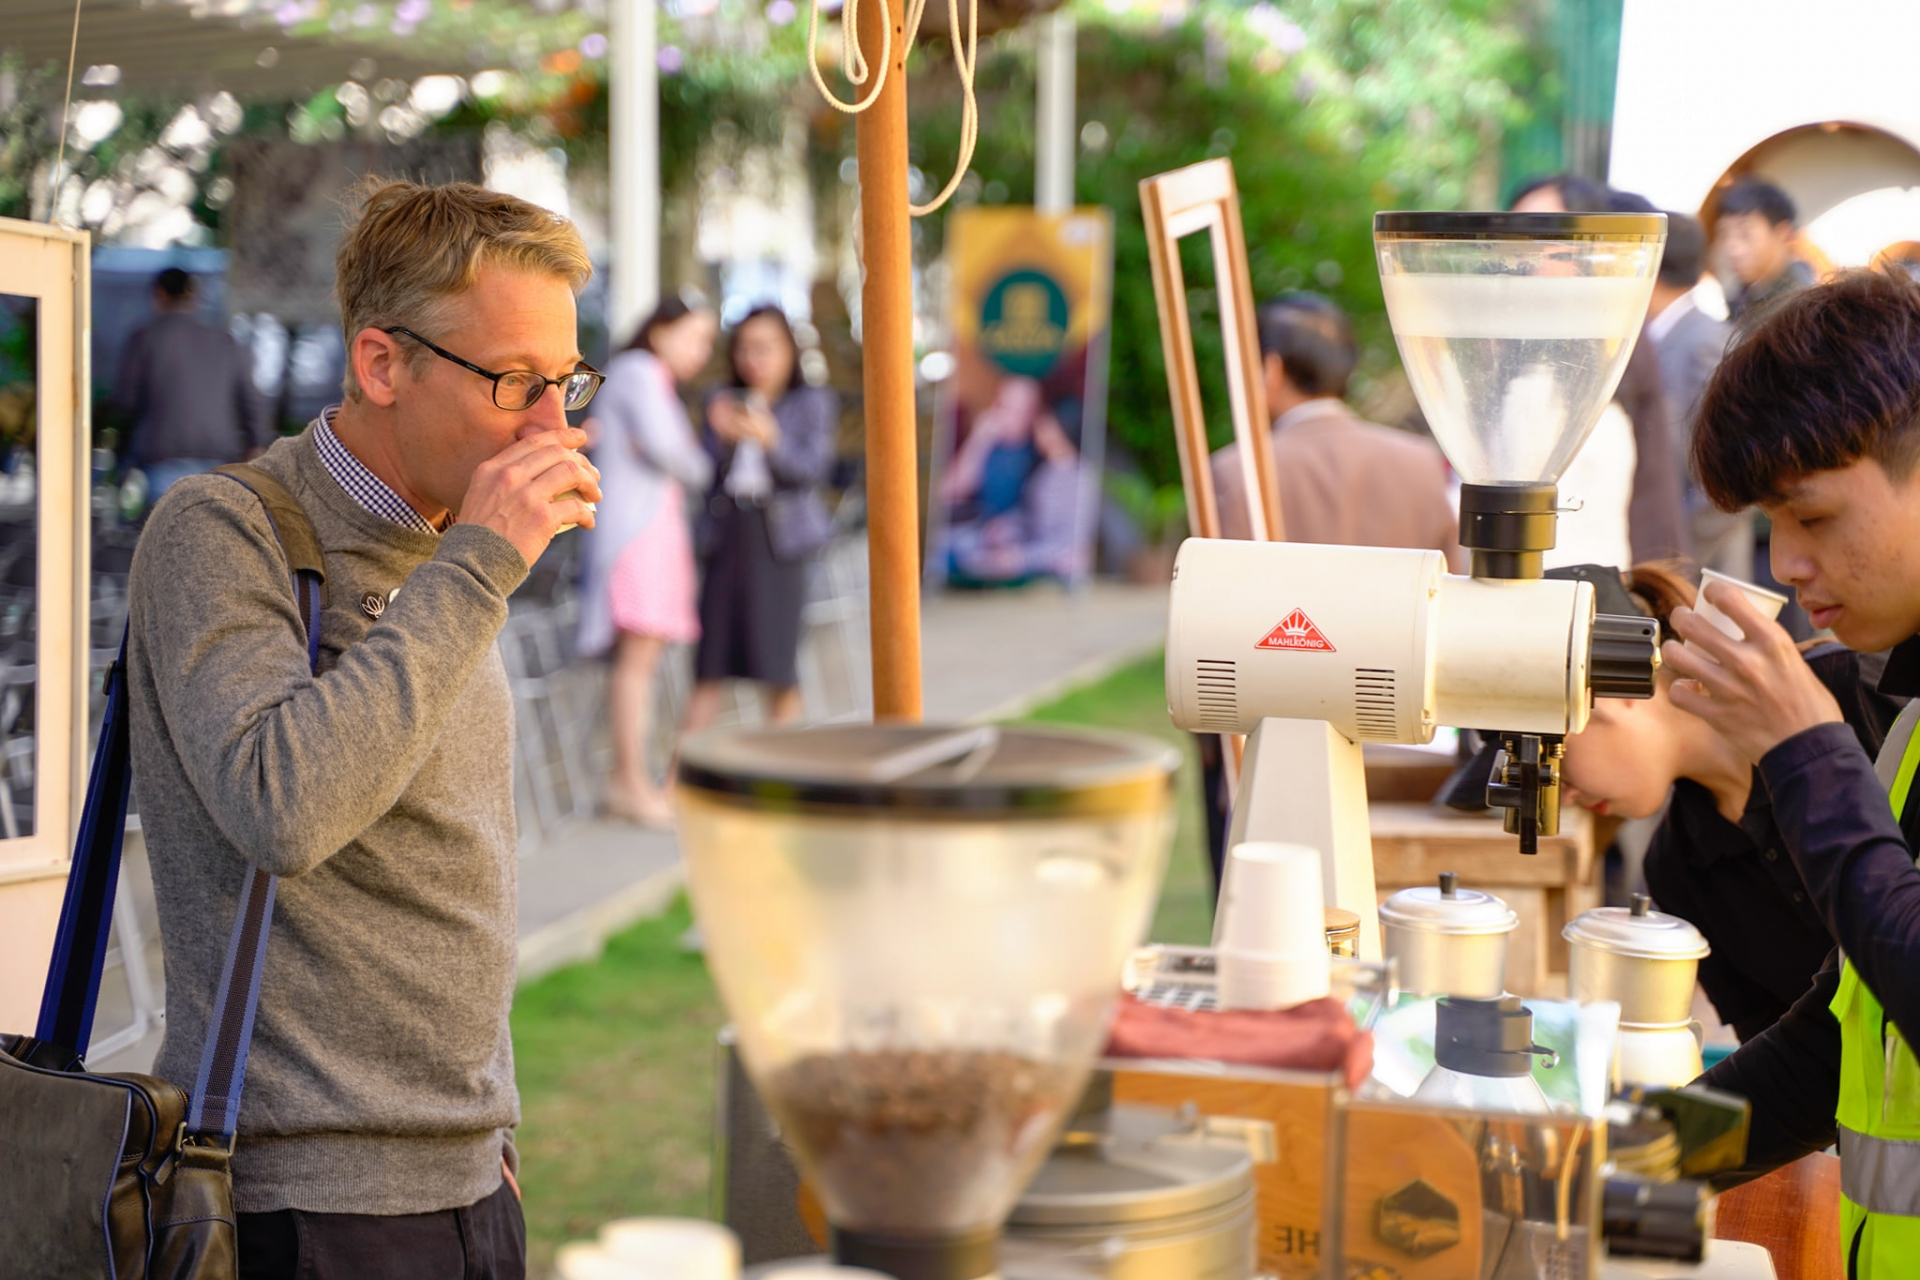 Arabica lac duong a journey to build high-quality coffee brand